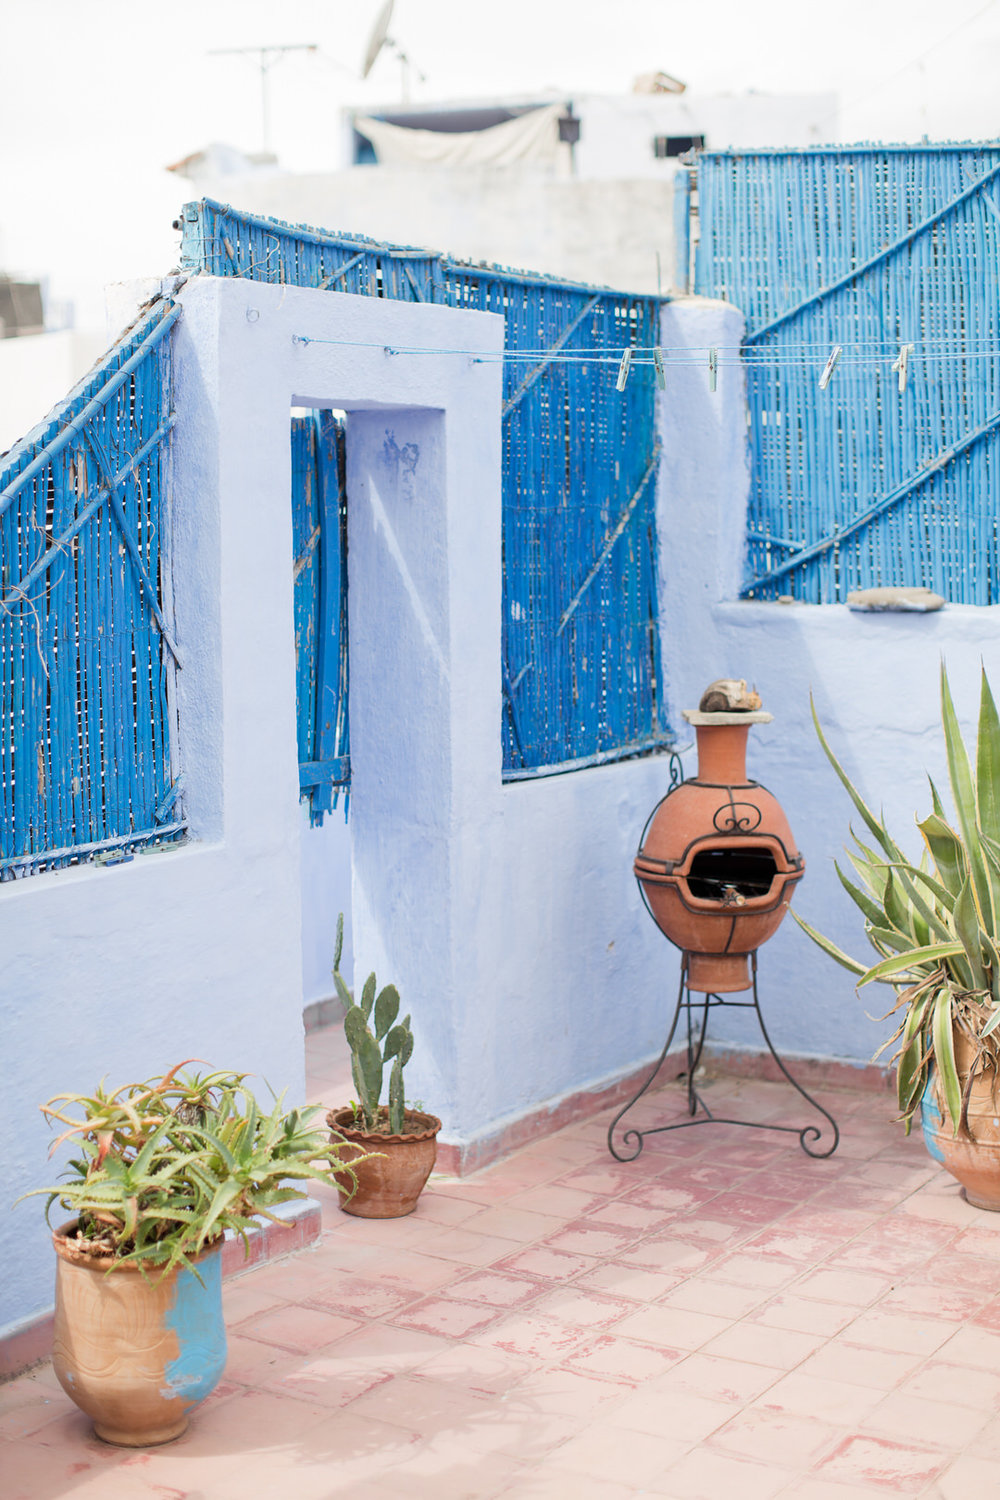 Melissa Kruse Photography - Chefchaouen Morocco (web)-41.jpg